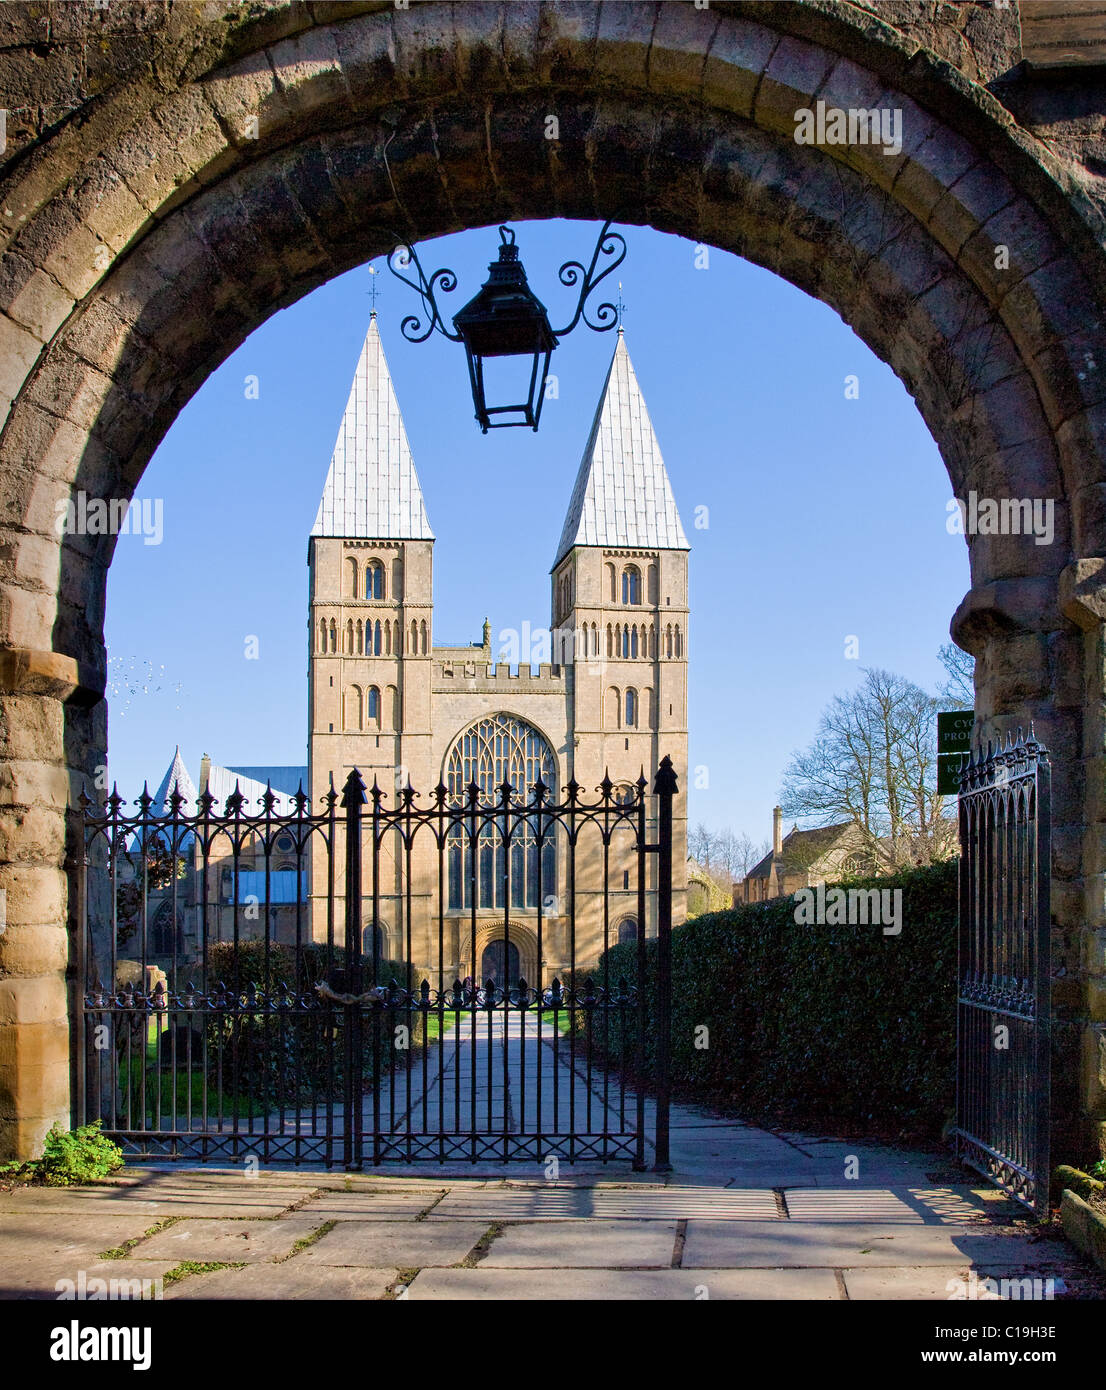 Southwell Minster in Nottinghamshire with unusual pepper pot towers glimpsed through the romanesque entrance gateway - Stock Image